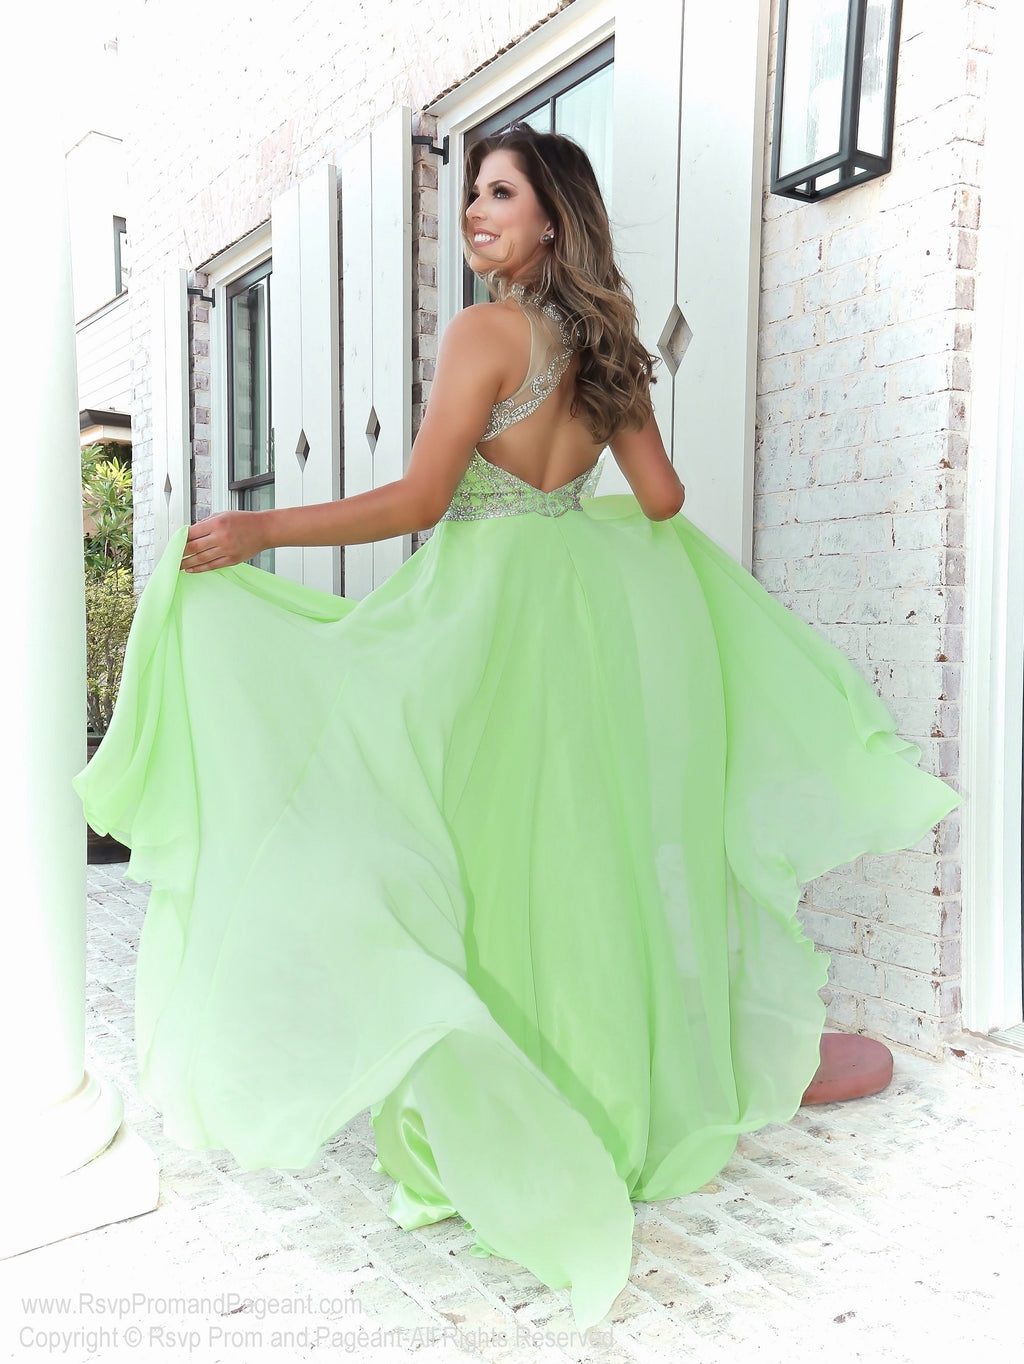 Model in in this gorgeous pastel green prom dress with an open back and flowing chiffon skirt! So elegant and it's at Rsvp Prom and Pageant, your source for the HOTTEST Prom and Pageant Dresses and exclusive evening gowns and located in Atlanta, Georgia!